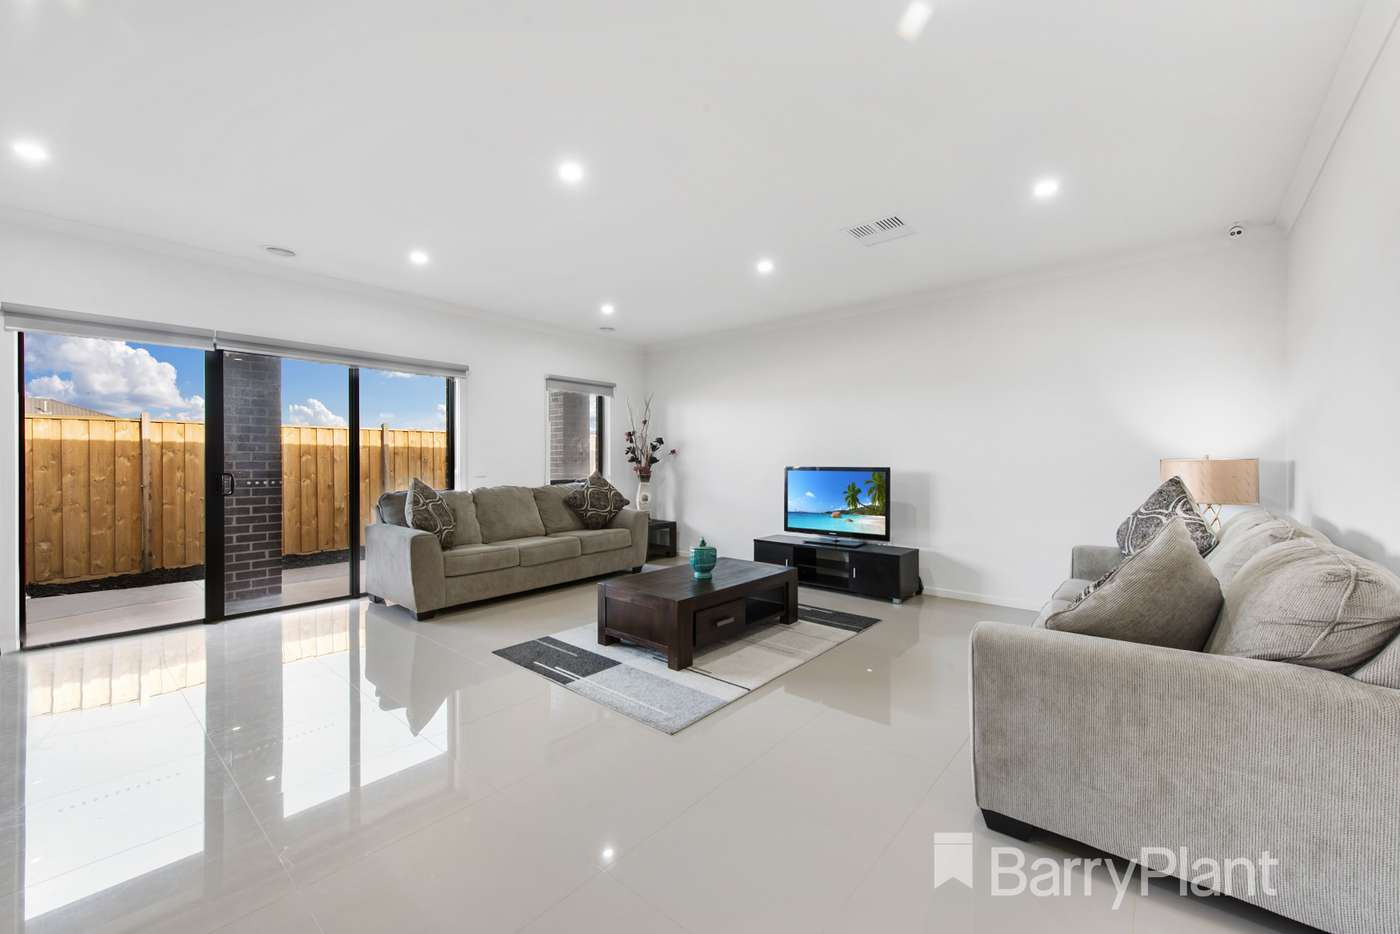 Seventh view of Homely house listing, 27 Latimer  Street, Wyndham Vale VIC 3024